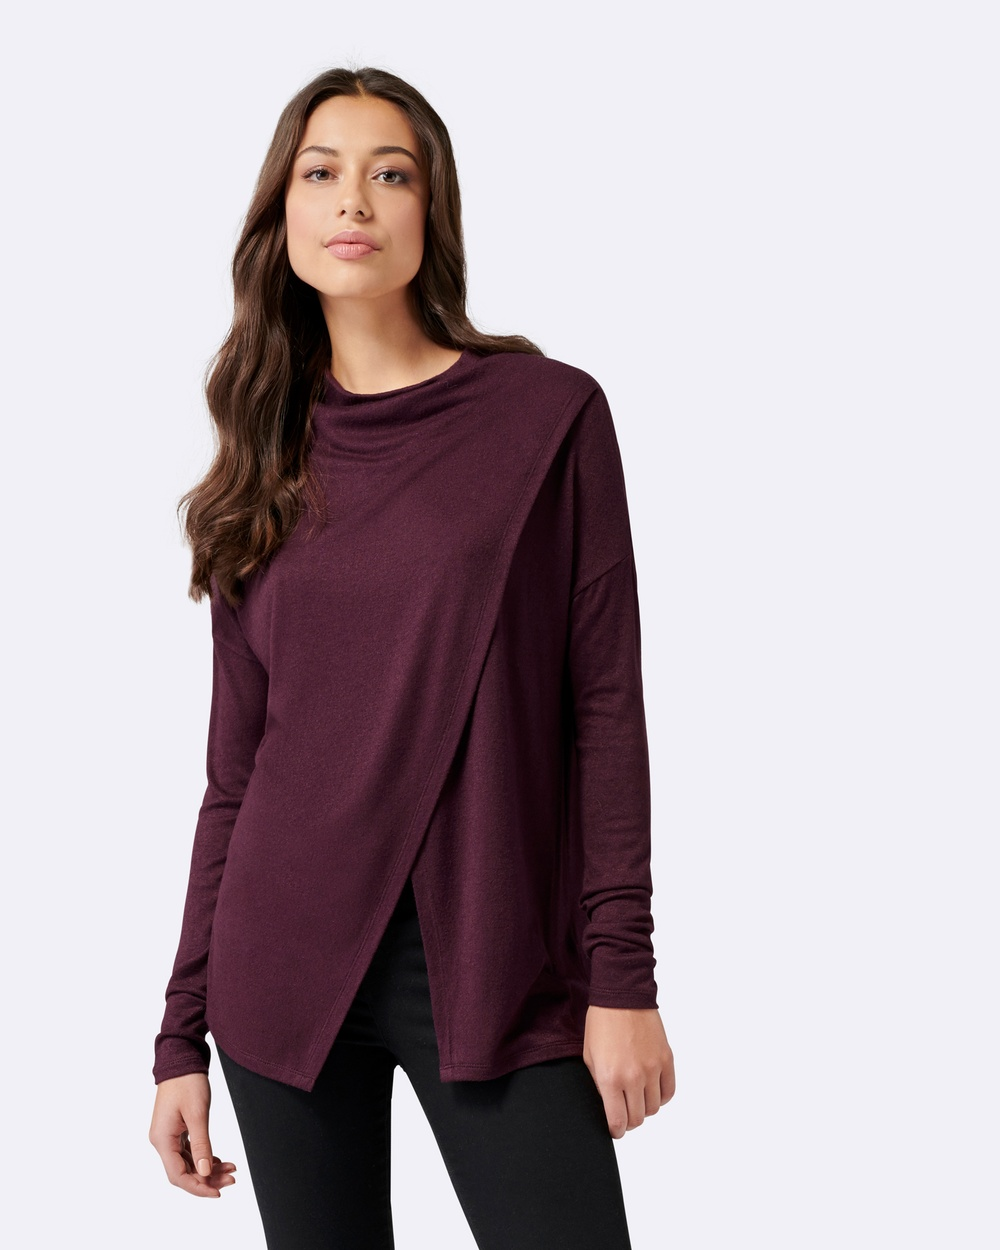 Forever New Piper Cross Over Neck Poncho Tops Dark Ruby Piper Cross Over Neck Poncho